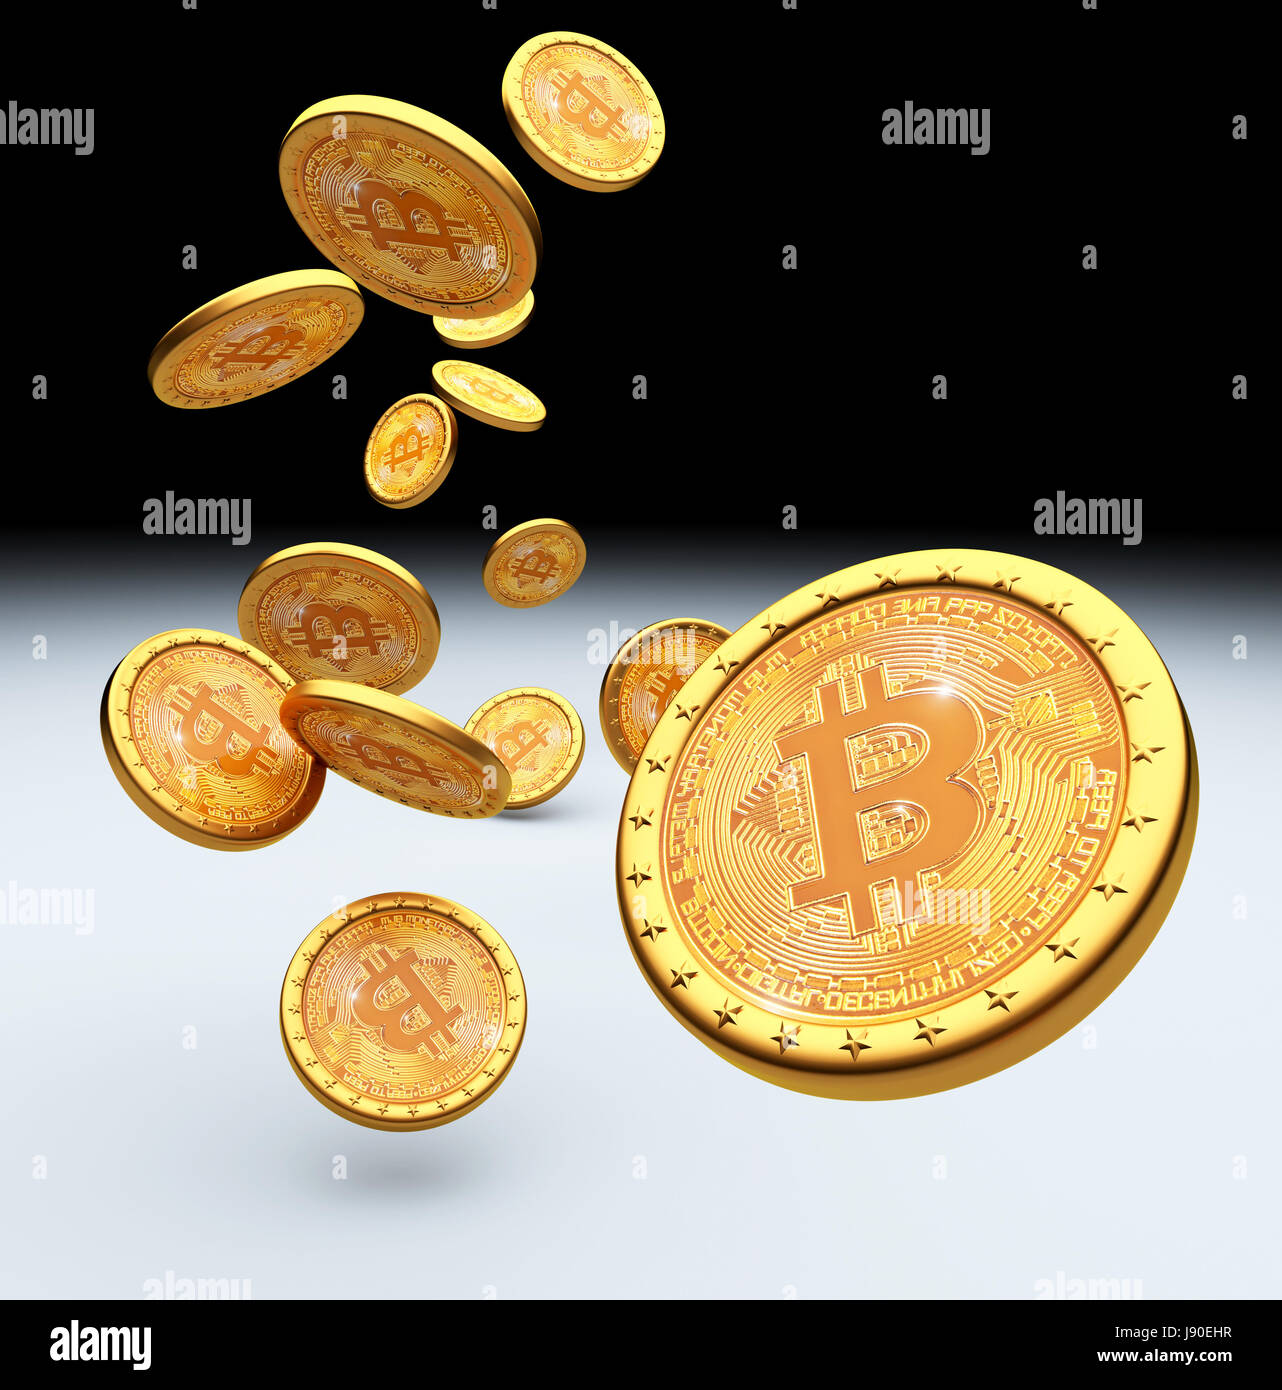 bitcoin golden coin 3d rendering image - Stock Image